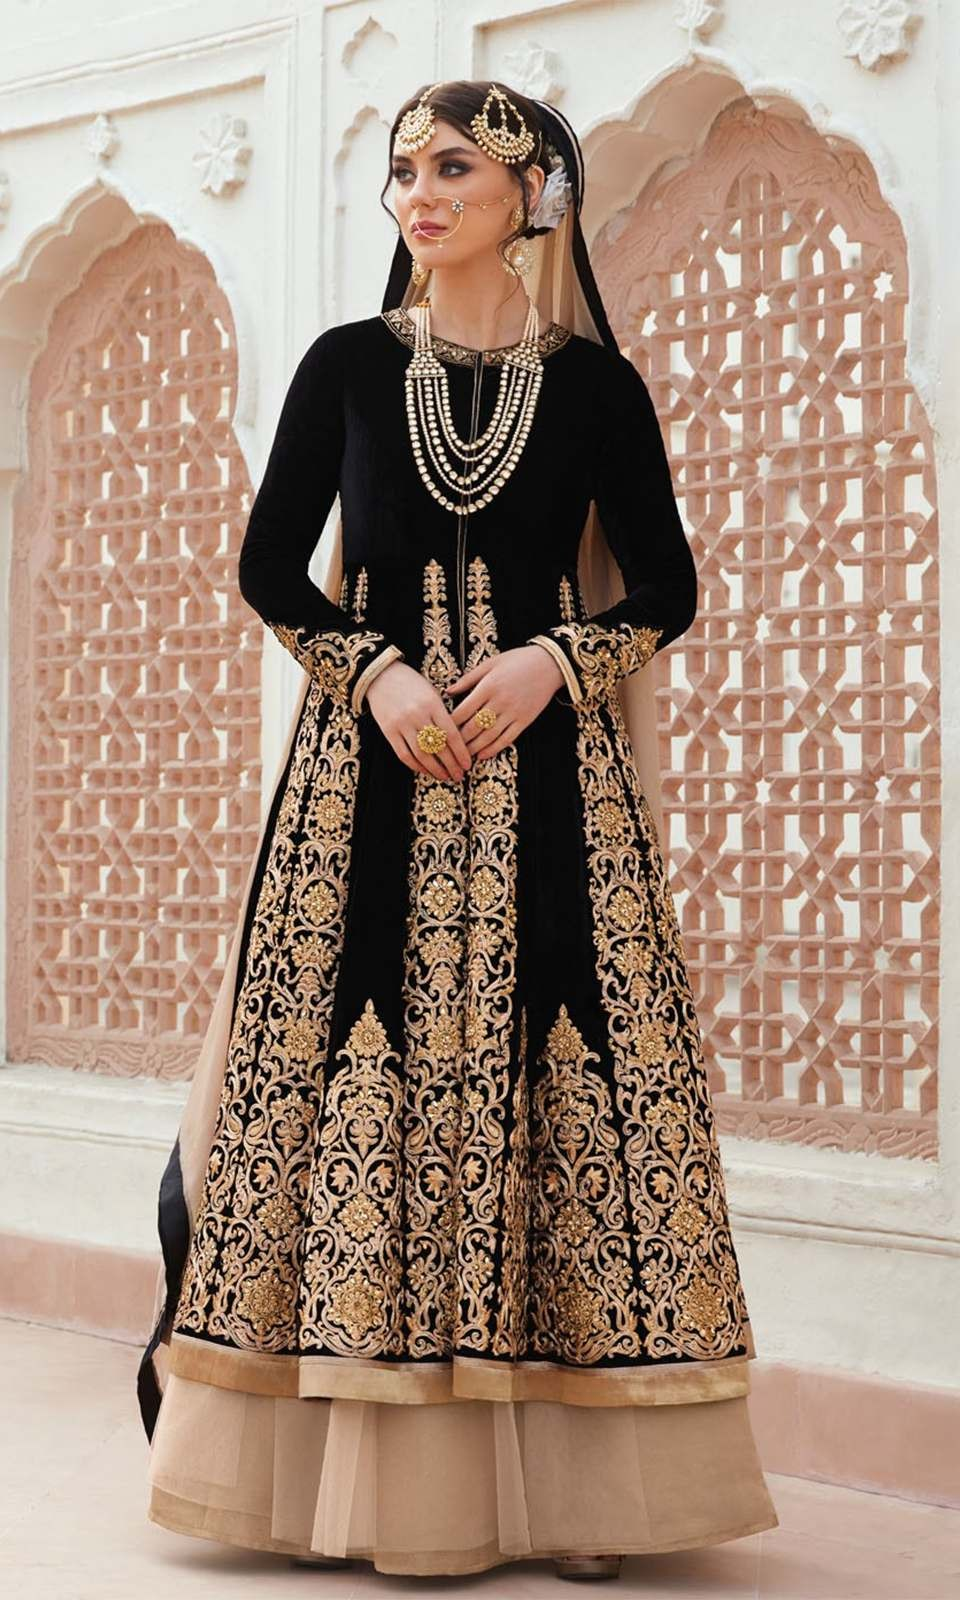 Black and Beige Party Wear Floor Length Designer Suit  • Party Wear Floor Length Designer Suit • This Dress can also be Styled in Lehenga Choli • Fabric :Raw Silk and Net • Salwar Fabric : Net • Dupatta Fabric : Net • Size : Semi-Stitched (customizable Upto size-44)  SKU: SUEJDSFL7405 Rs. 7,199  #styles #beauty #love #followme #roposo #fashion #model #indian